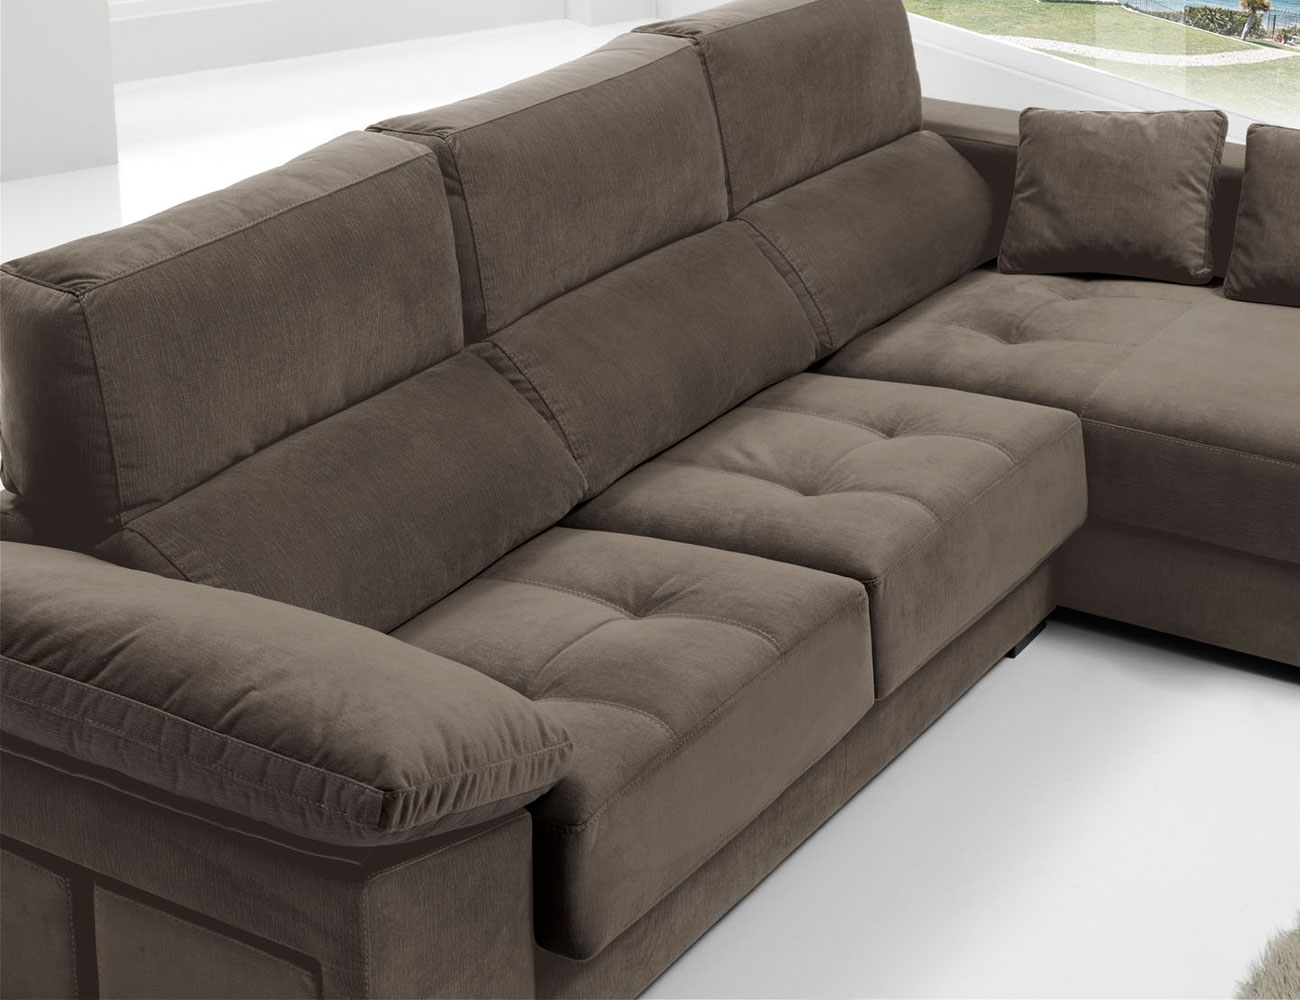 Sofa chaiselongue anti manchas bering pouf 291